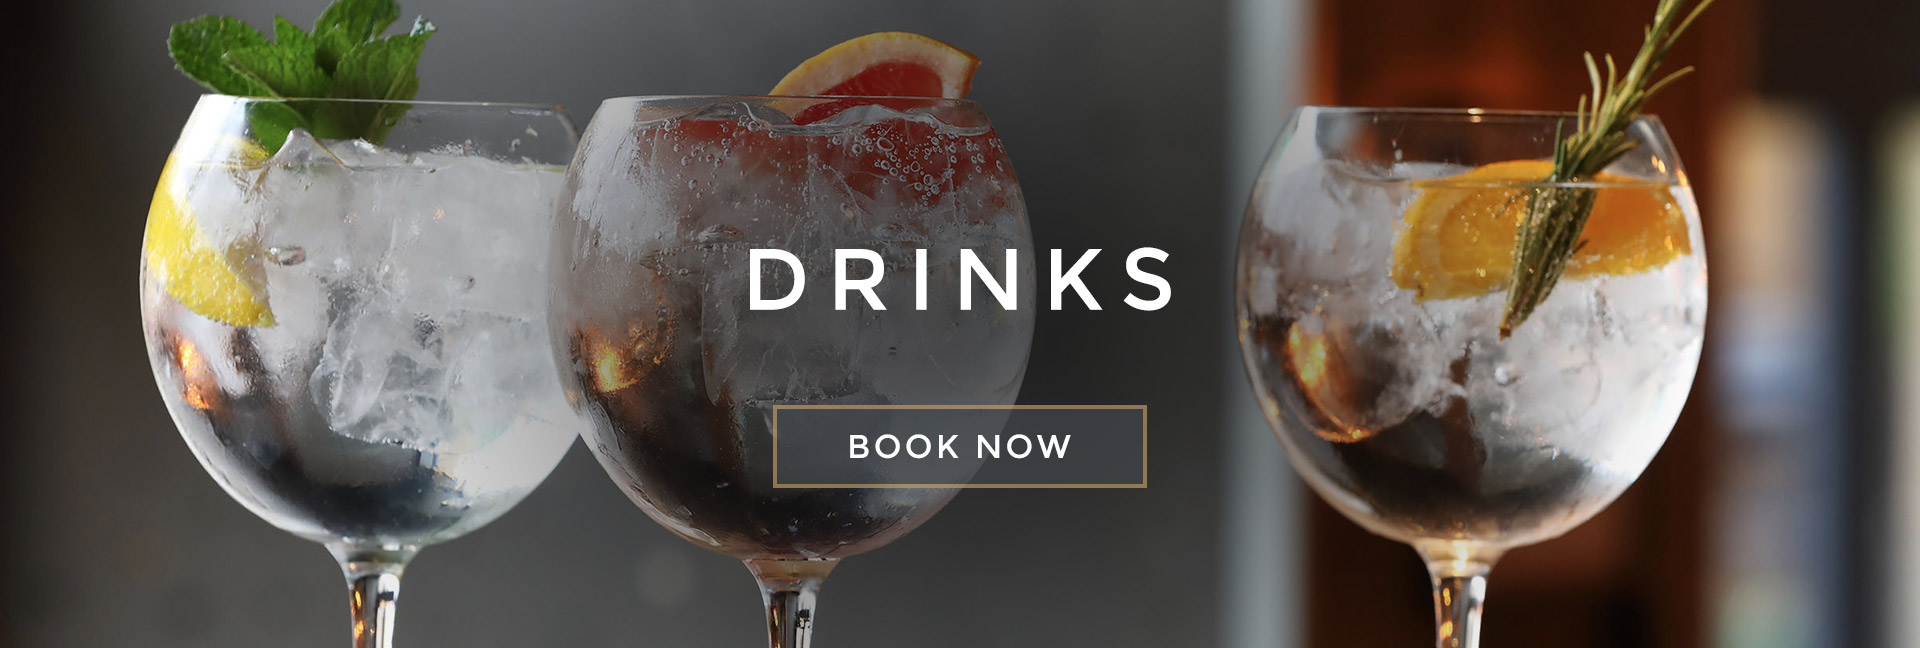 Drinks at All Bar One Newhall Street Birmingham - Book your table